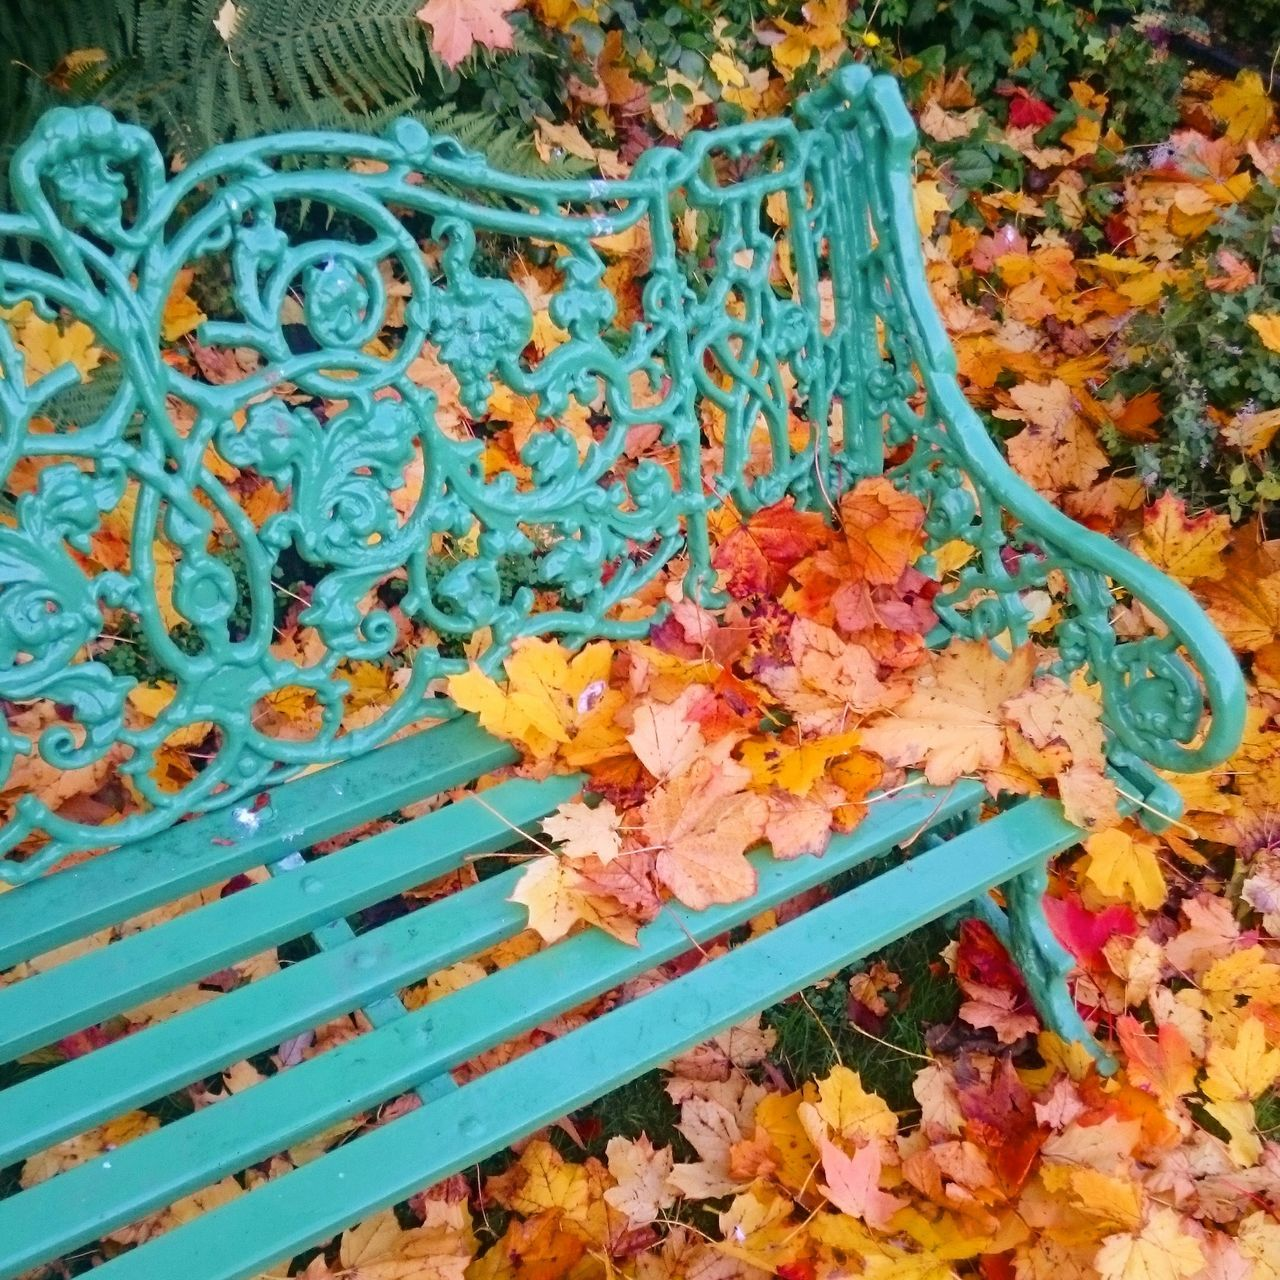 High Angle View Close-up Outdoors Day The Way Forward Autumn Leaves Relaxing TakeASeat Seat Freshness Autumn Tranquility